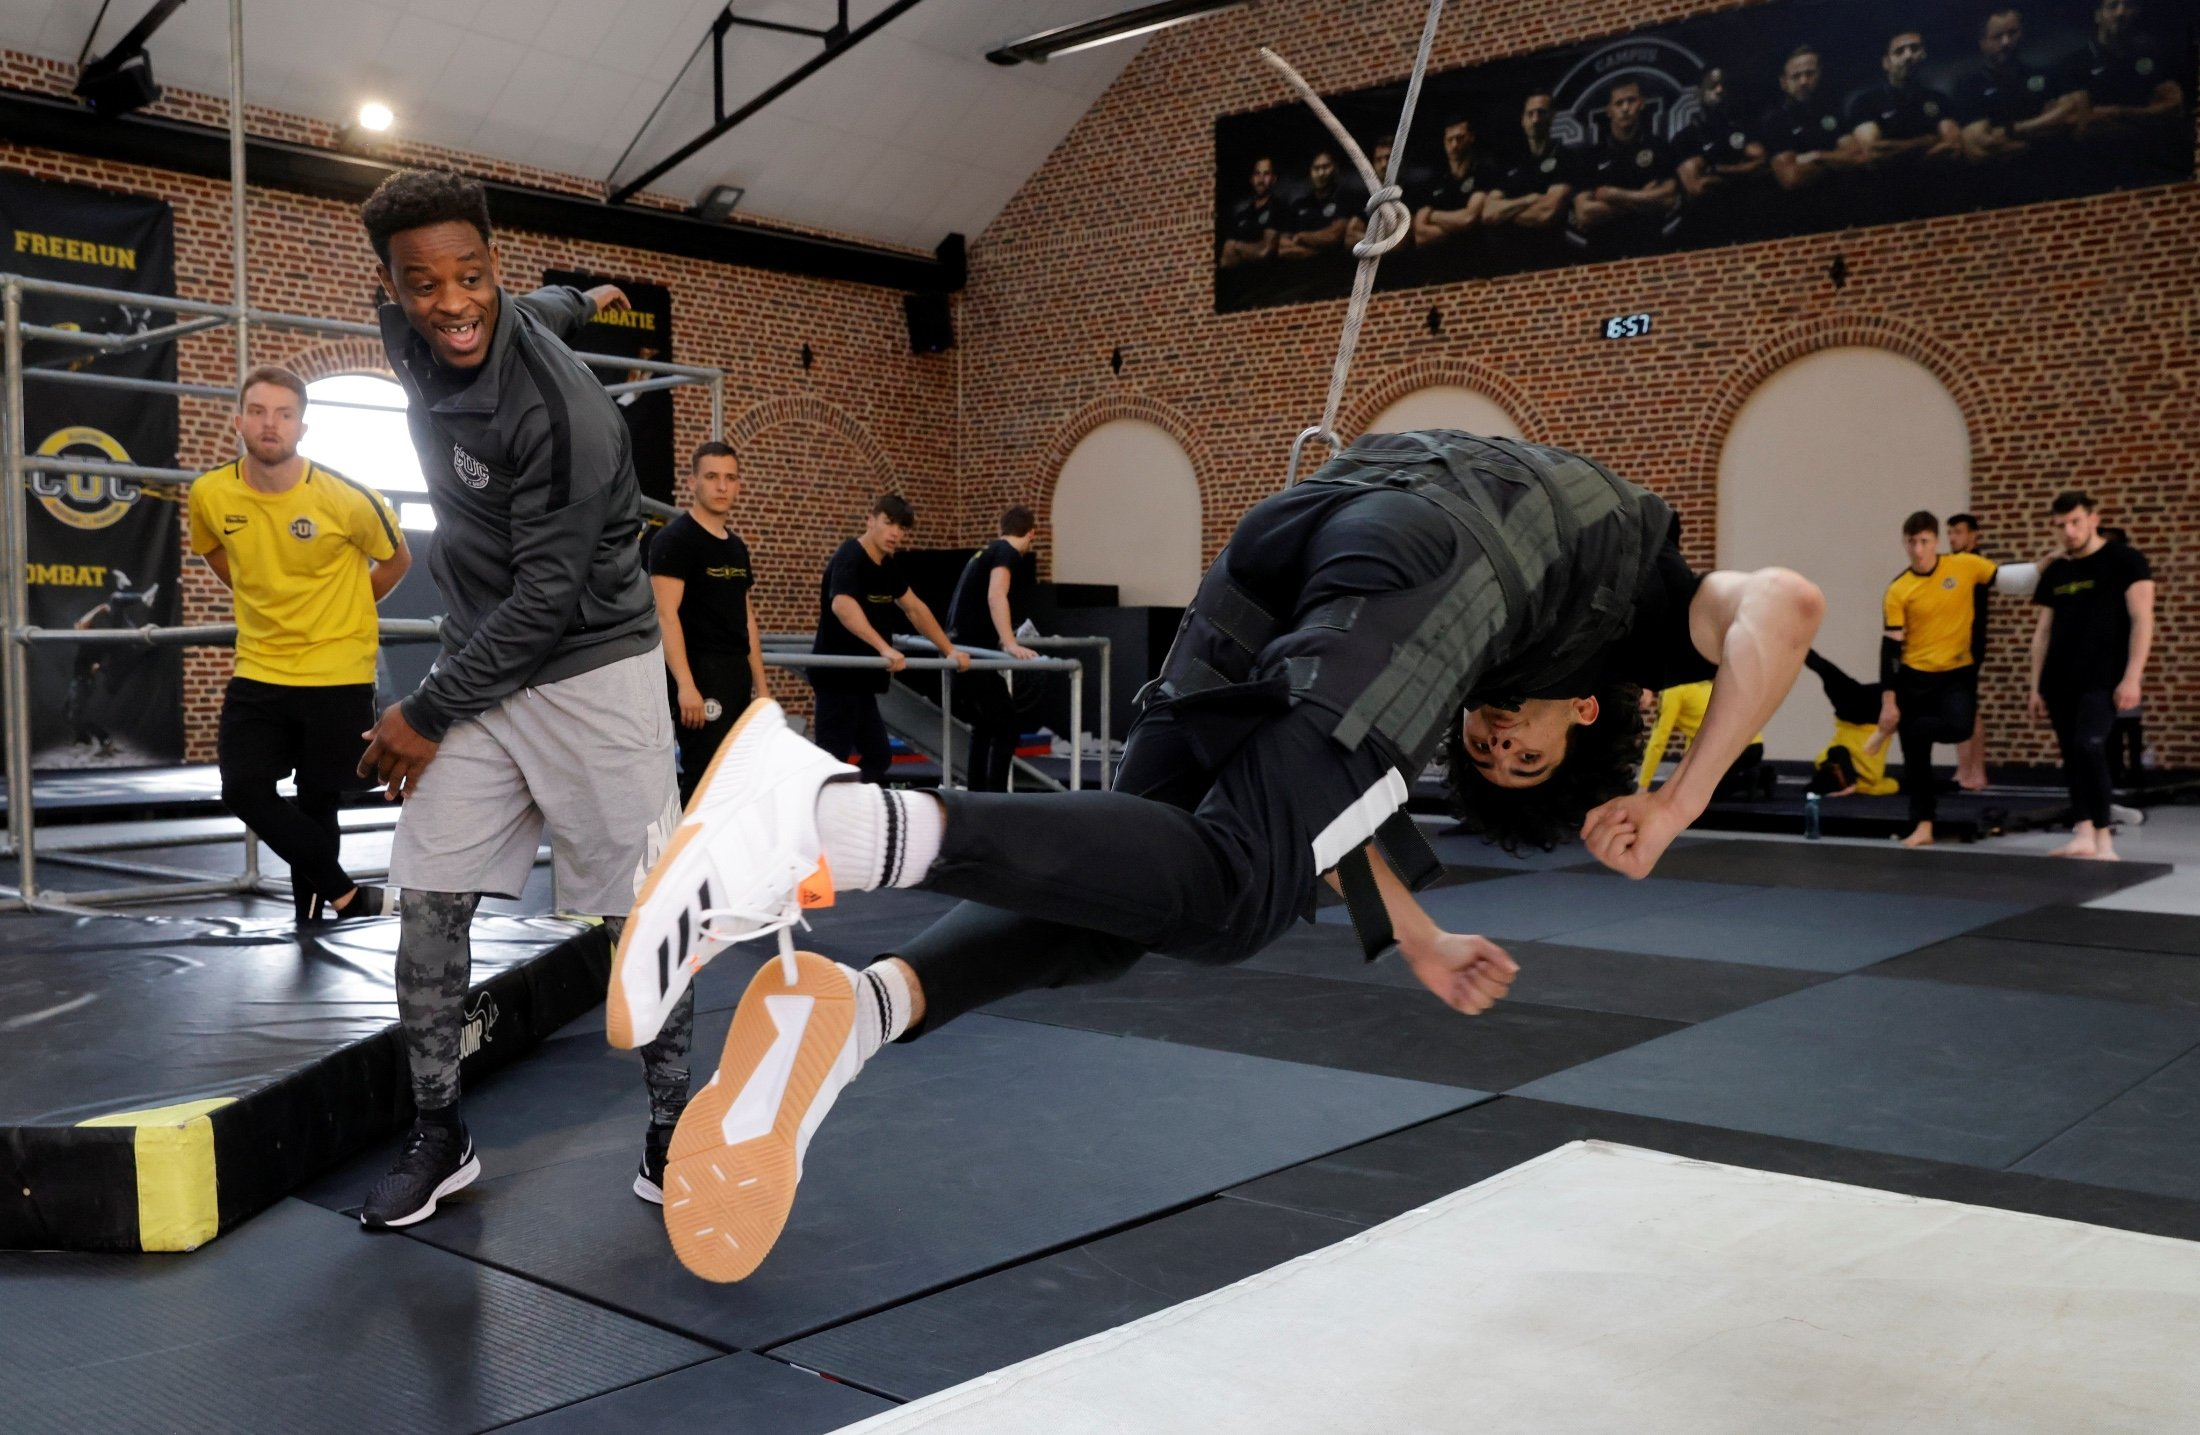 CUC parkour and free-running coach Malik Diouf coaches students during a stunt wire session at France's Campus Univers Cascade (CUC), a training ground for stuntpeople, in Le Cateau-Cambresis, France, May 4, 2021. (Reuters Photo)